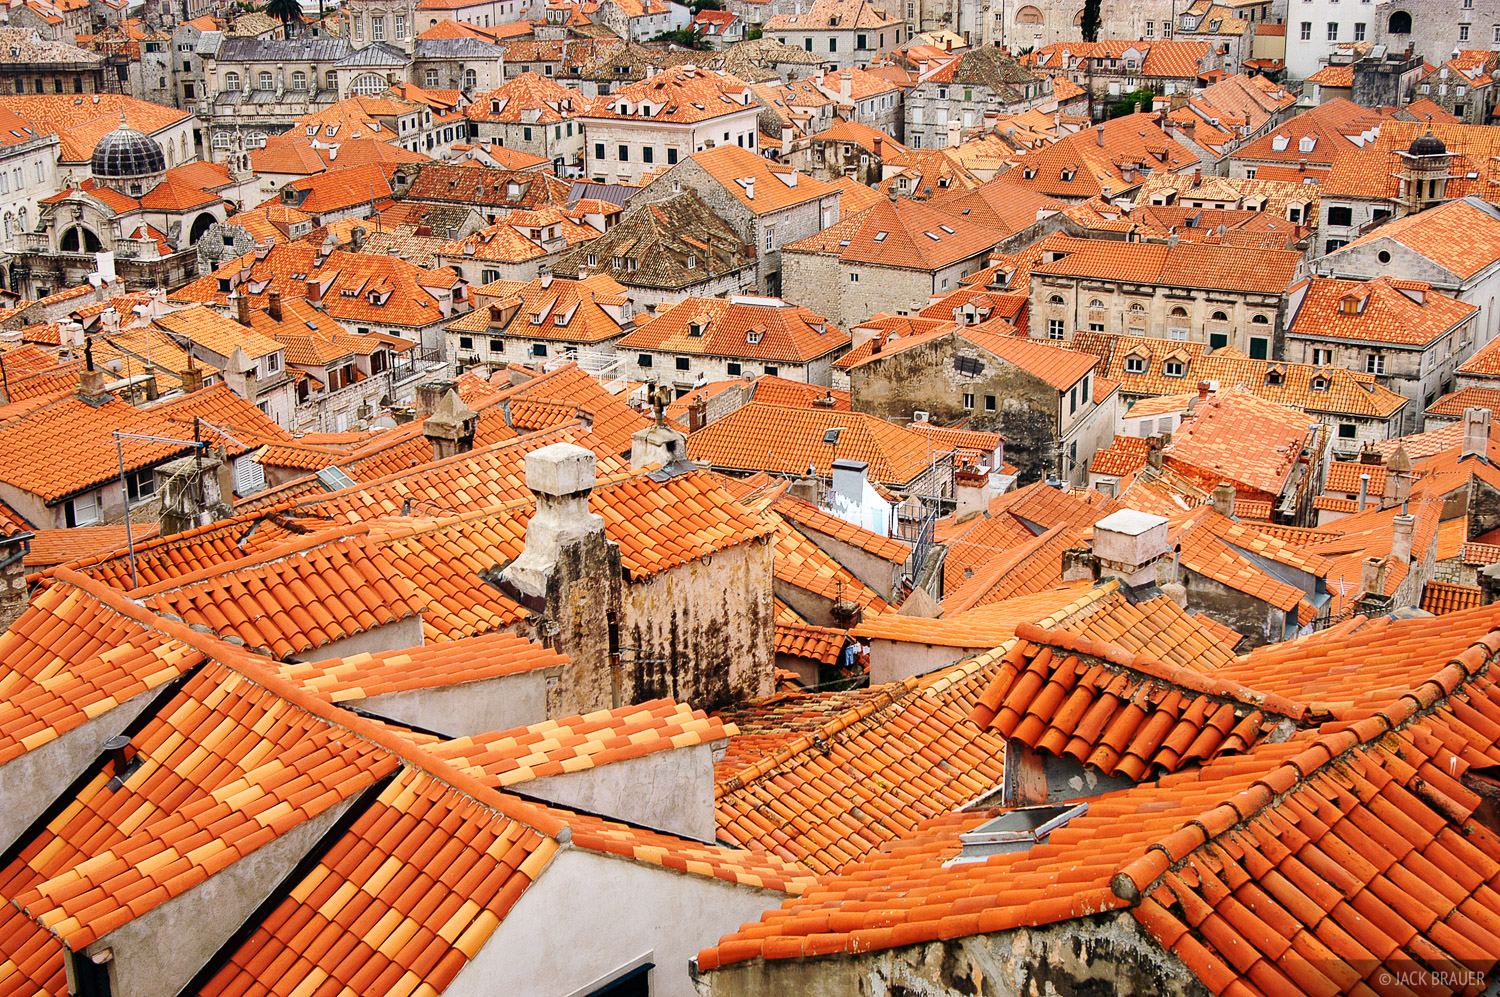 Dubrovnik is a historic walled city along the Adriatic Sea on the southern coast of Croatia. In 1991 during the Croatian War...